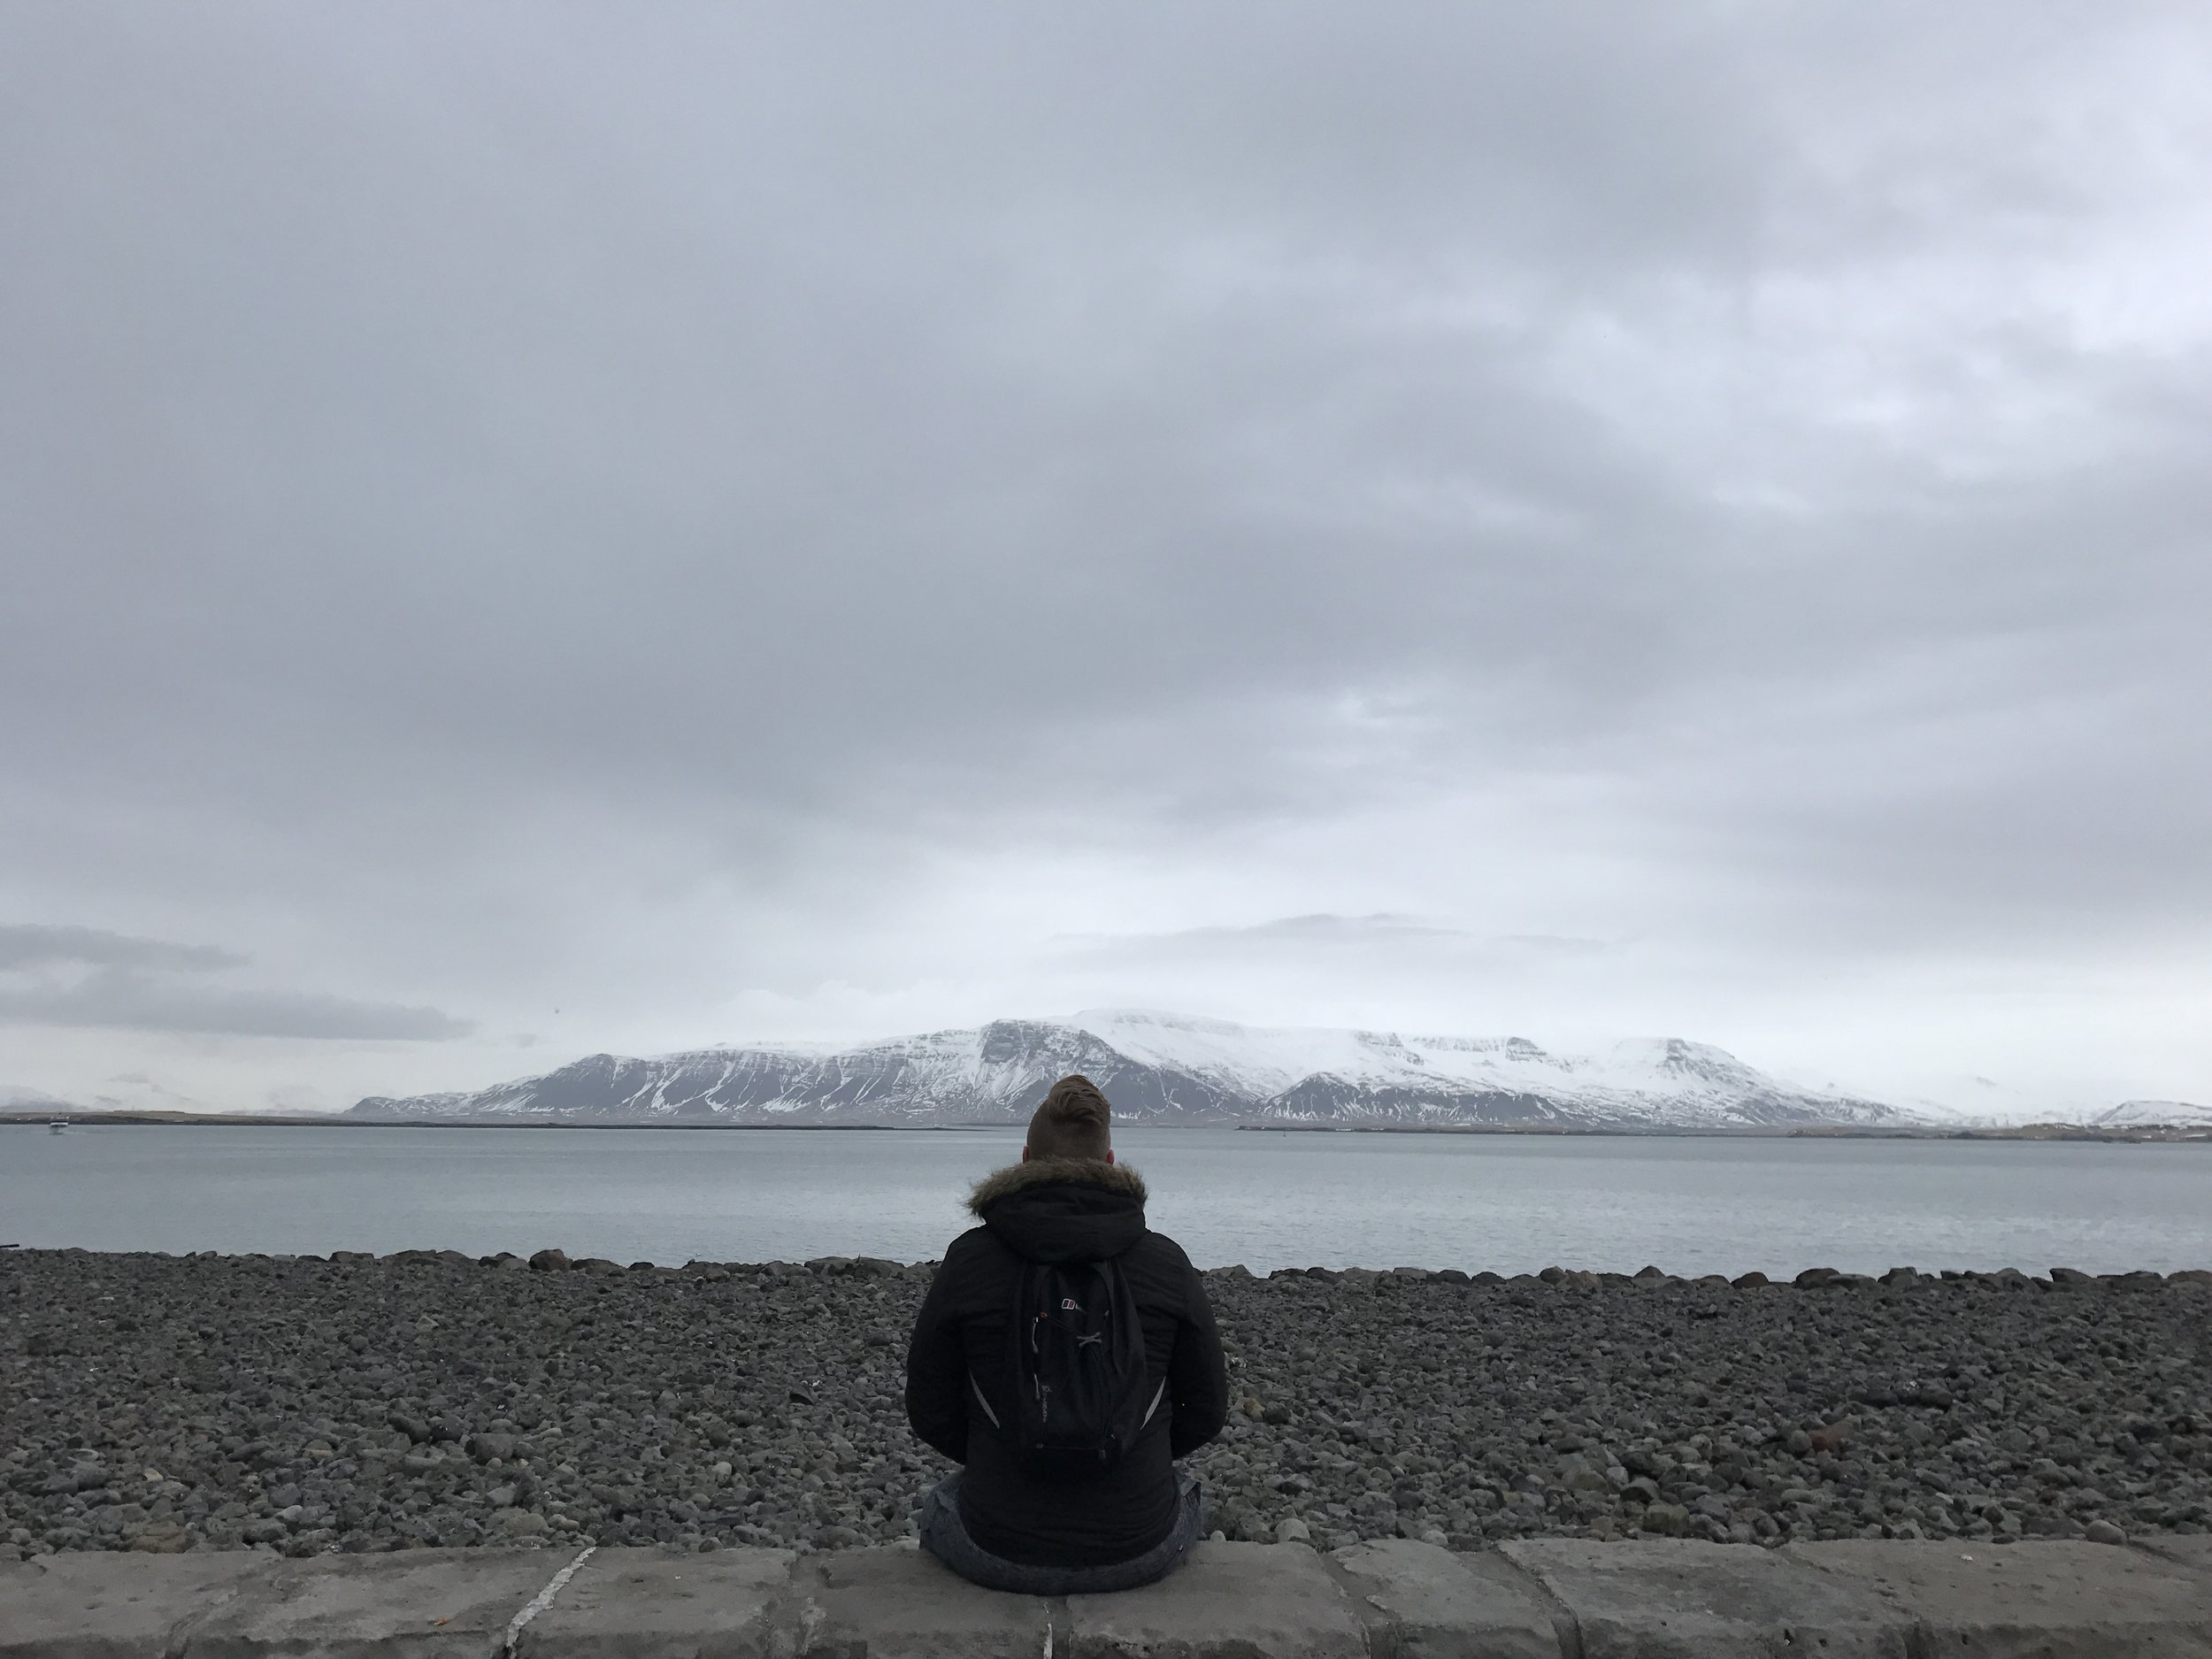 Iceland is an amazing place, and has stunning views like this.